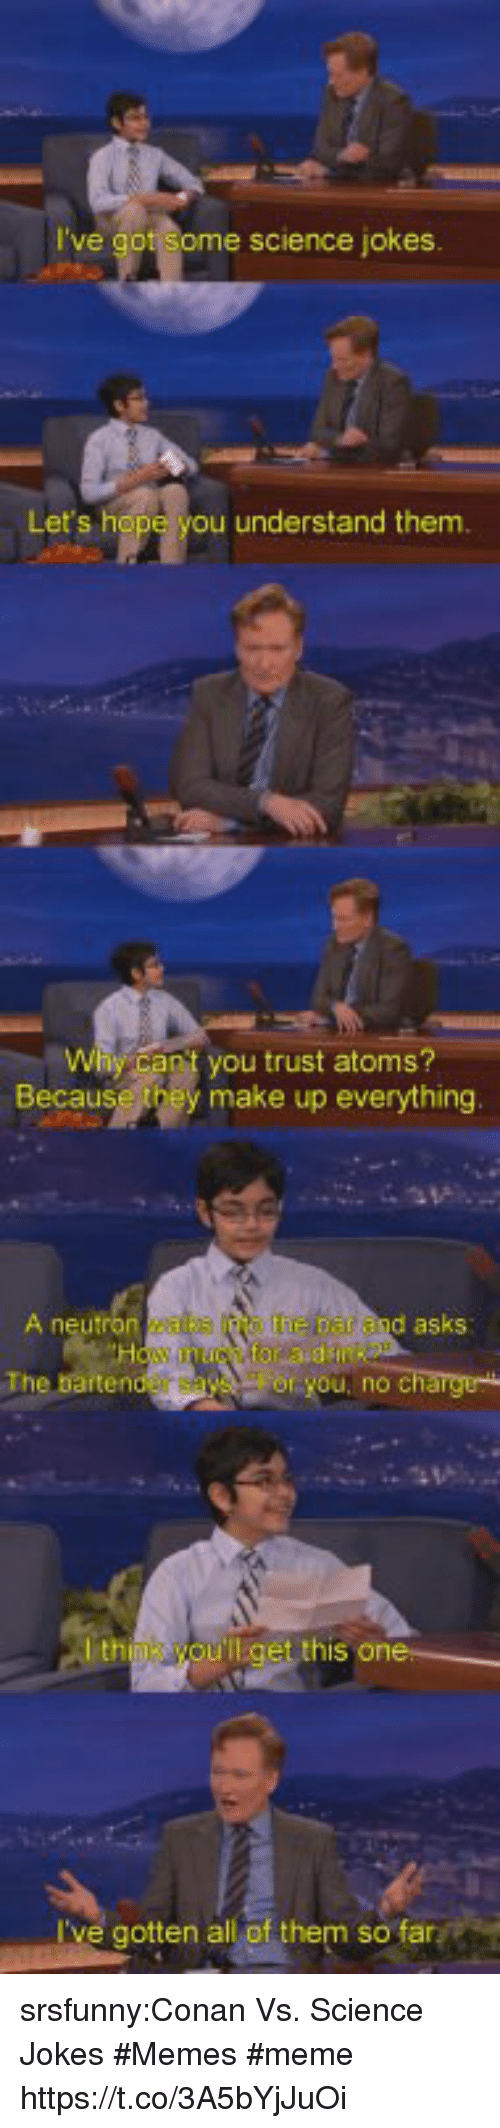 Meme, Memes, and Jokes: e science jokes.  Let's h  understand them.  y can t you trust atoms?  Because they make up everything  A n  d asks  ou, no C  th  I've gotten all of them so srsfunny:Conan Vs. Science Jokes #Memes #meme https://t.co/3A5bYjJuOi